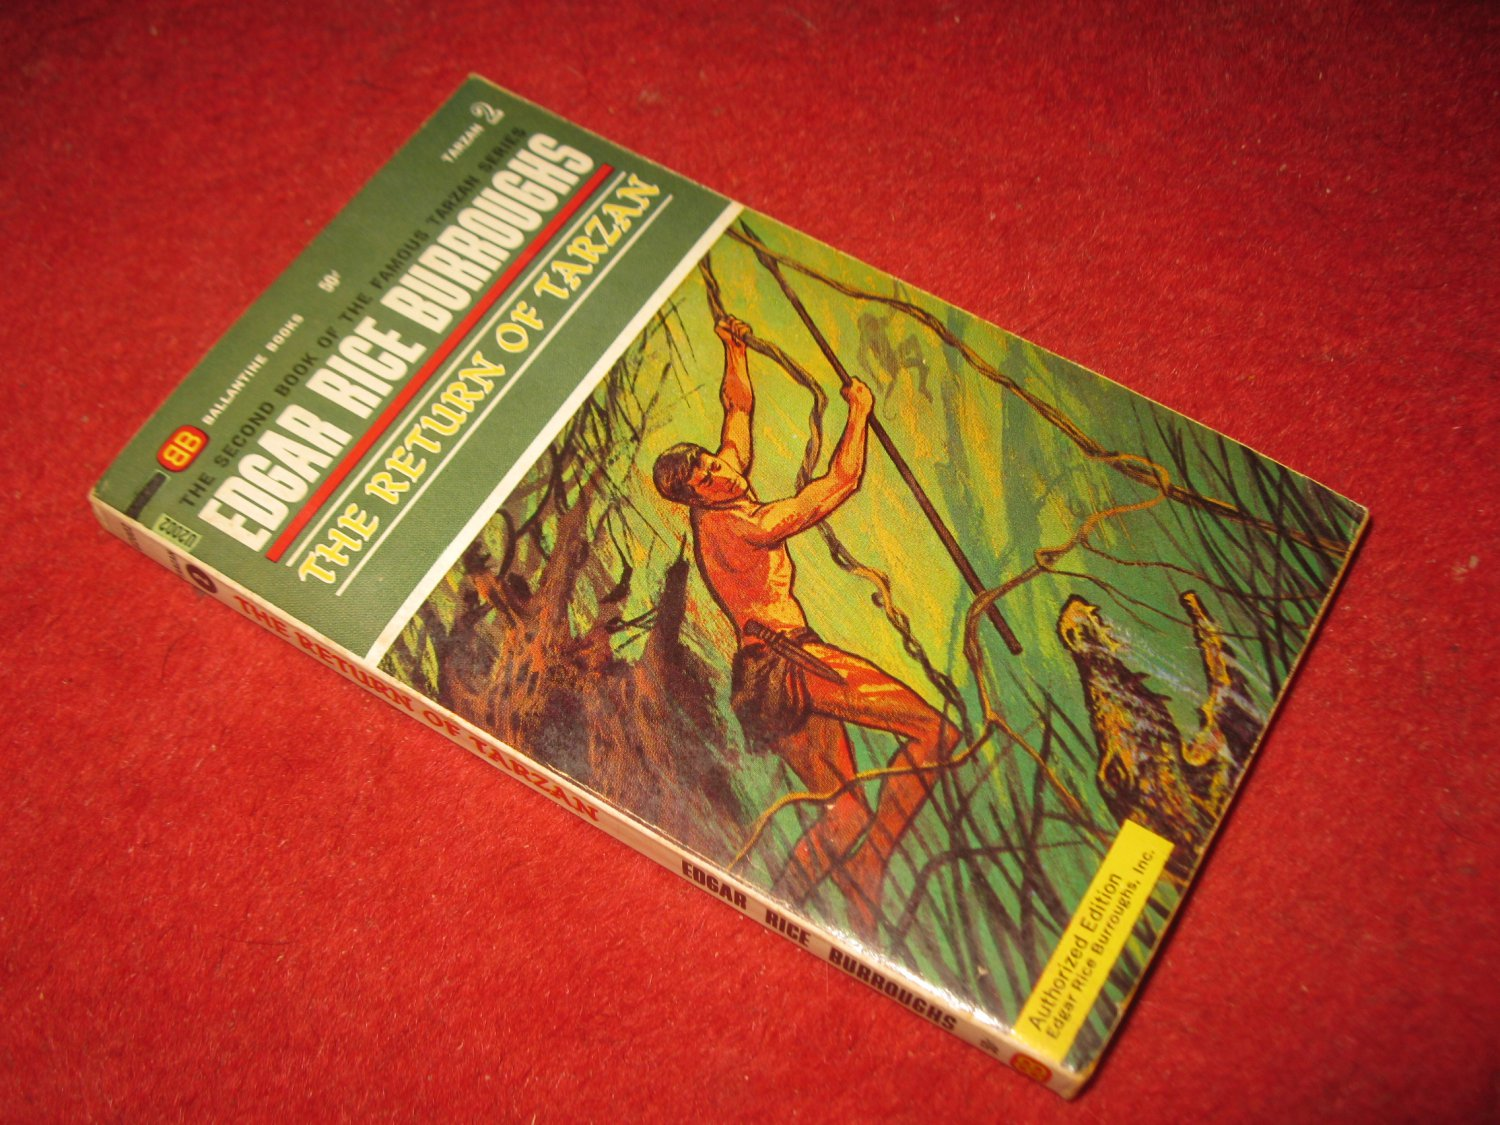 1963 Tarzan #2: The Return of Tarzan - by Edgar Rice Burroughs - Ballantine books - paperback